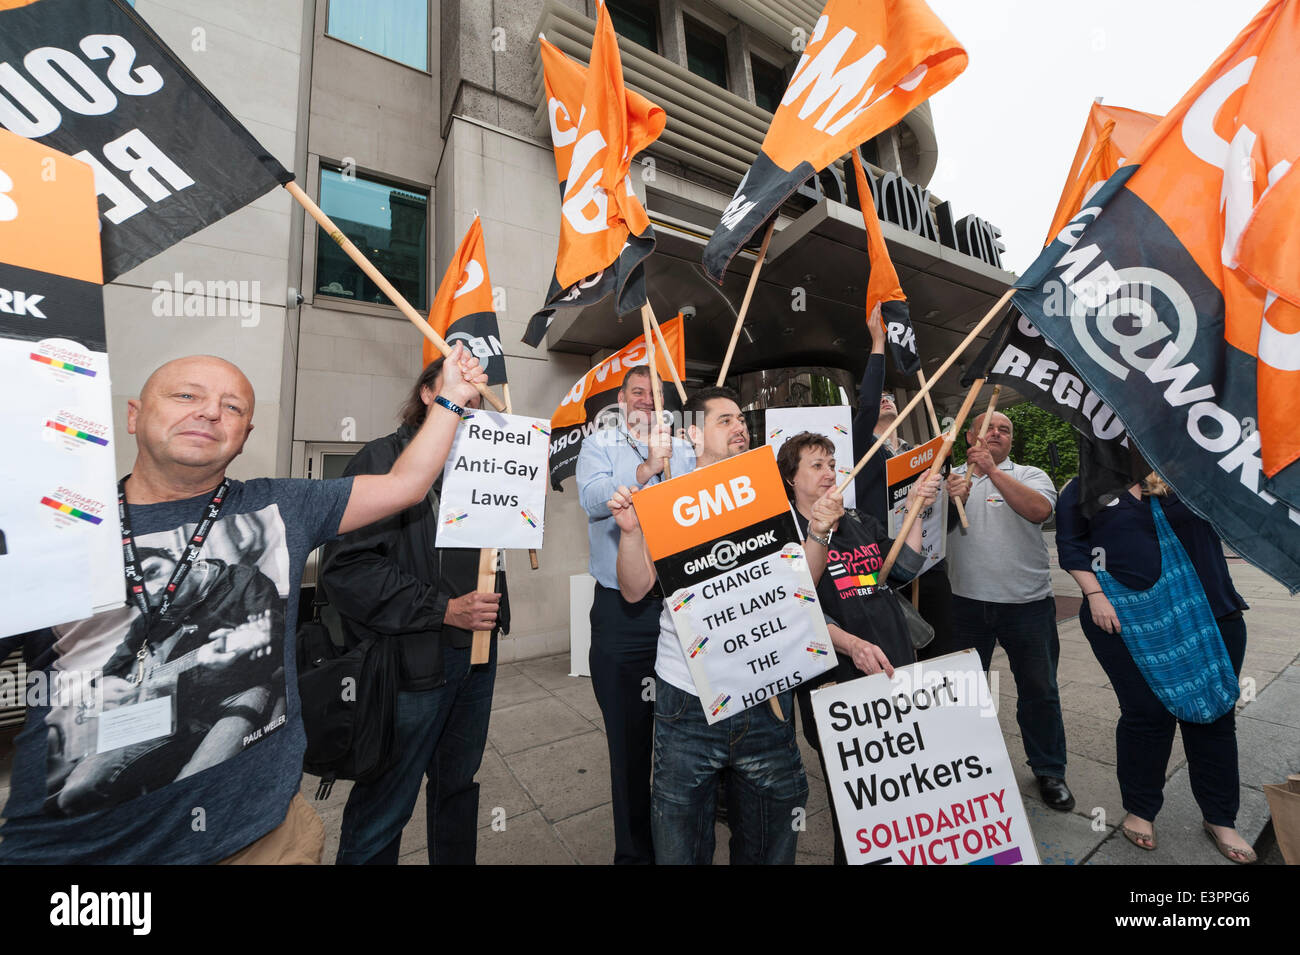 Park Lane, London, Uk. 27th June 2014. The GMB union and LGBT activists protest outside 45 Park Lane hotel in London. - Stock Image